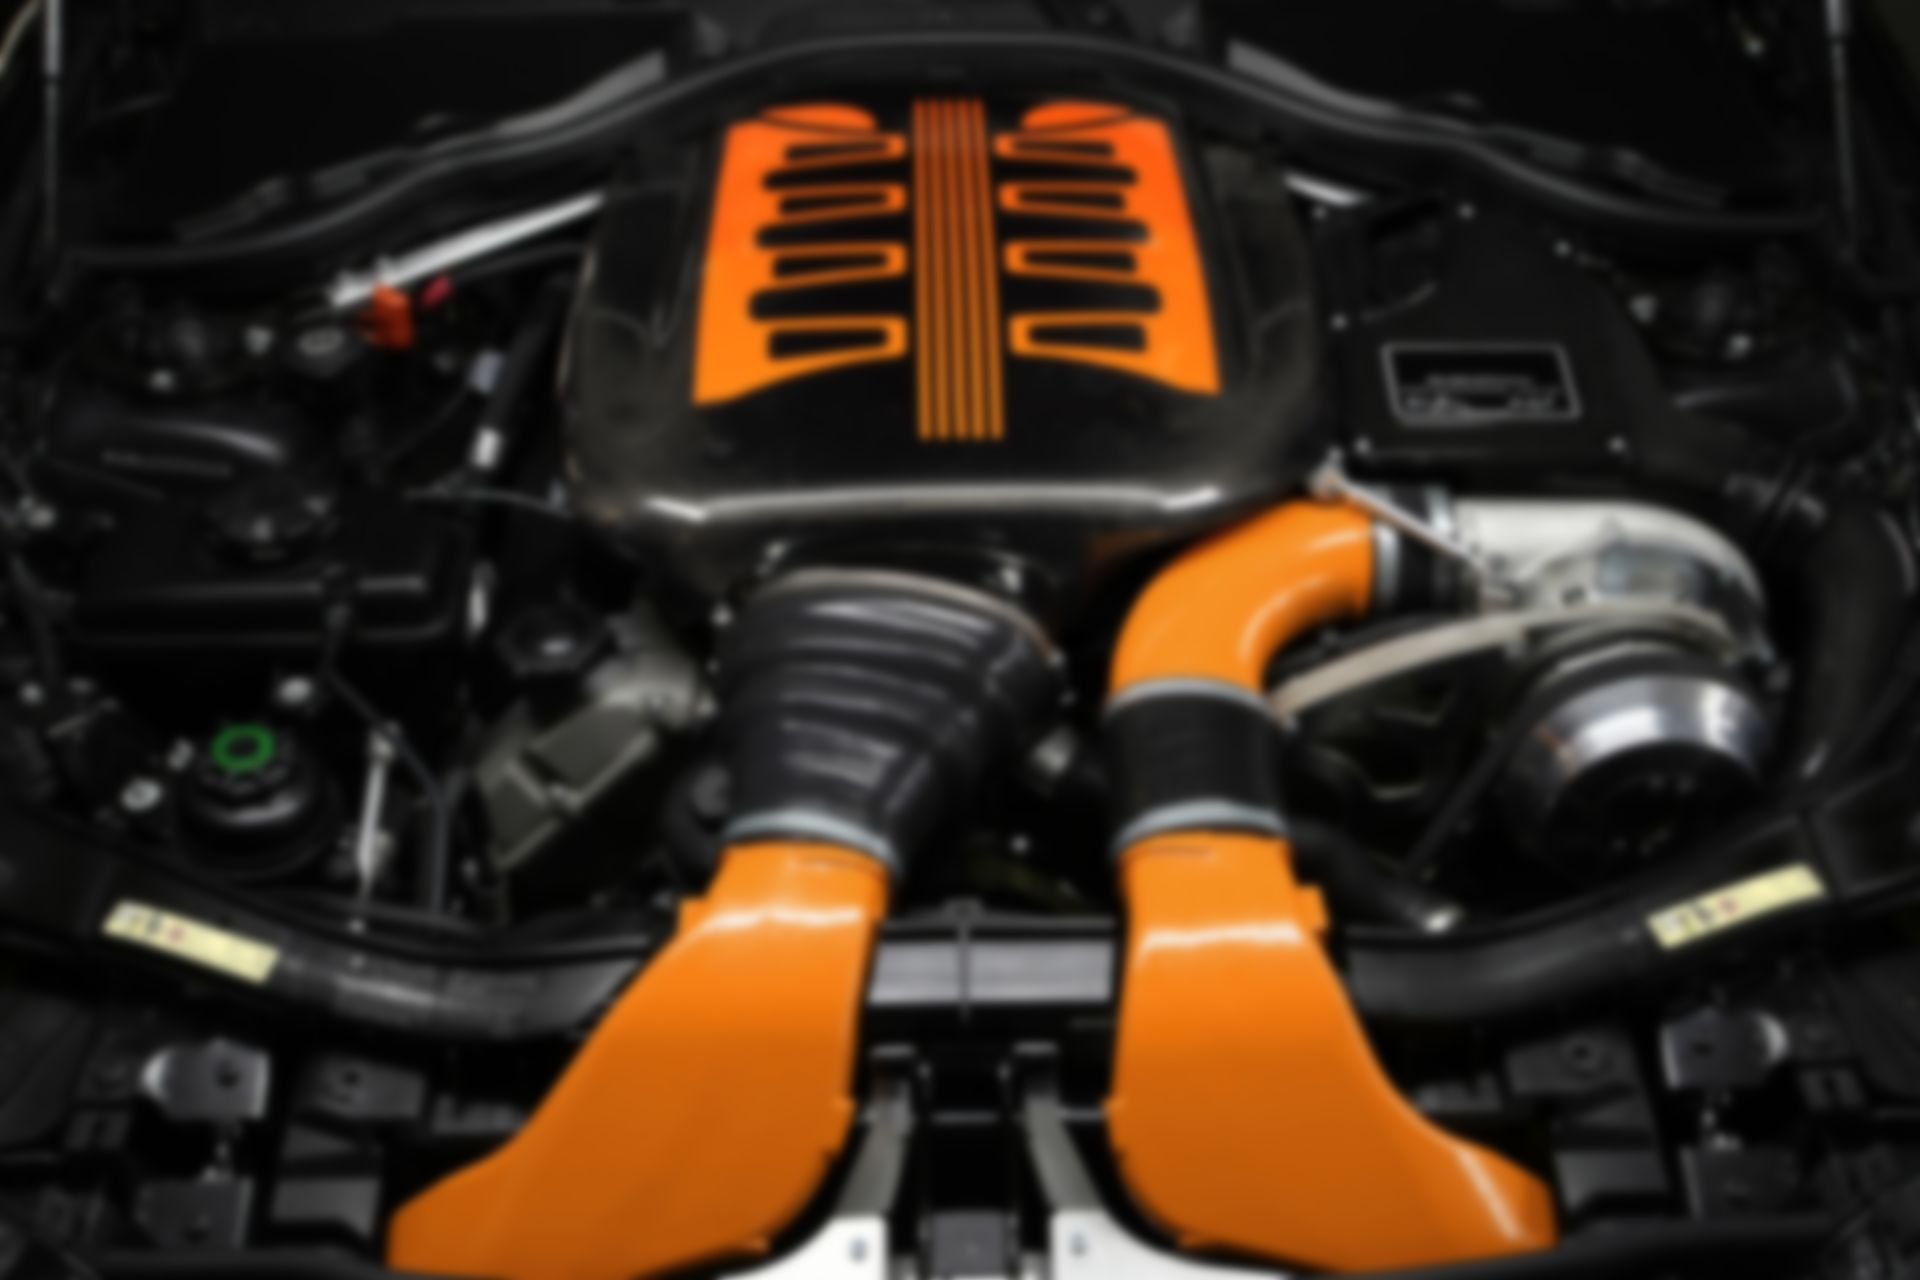 2011_G_Power_BMW_M_3_Tornado_R_S_tuning_engine_engines_3888x2592